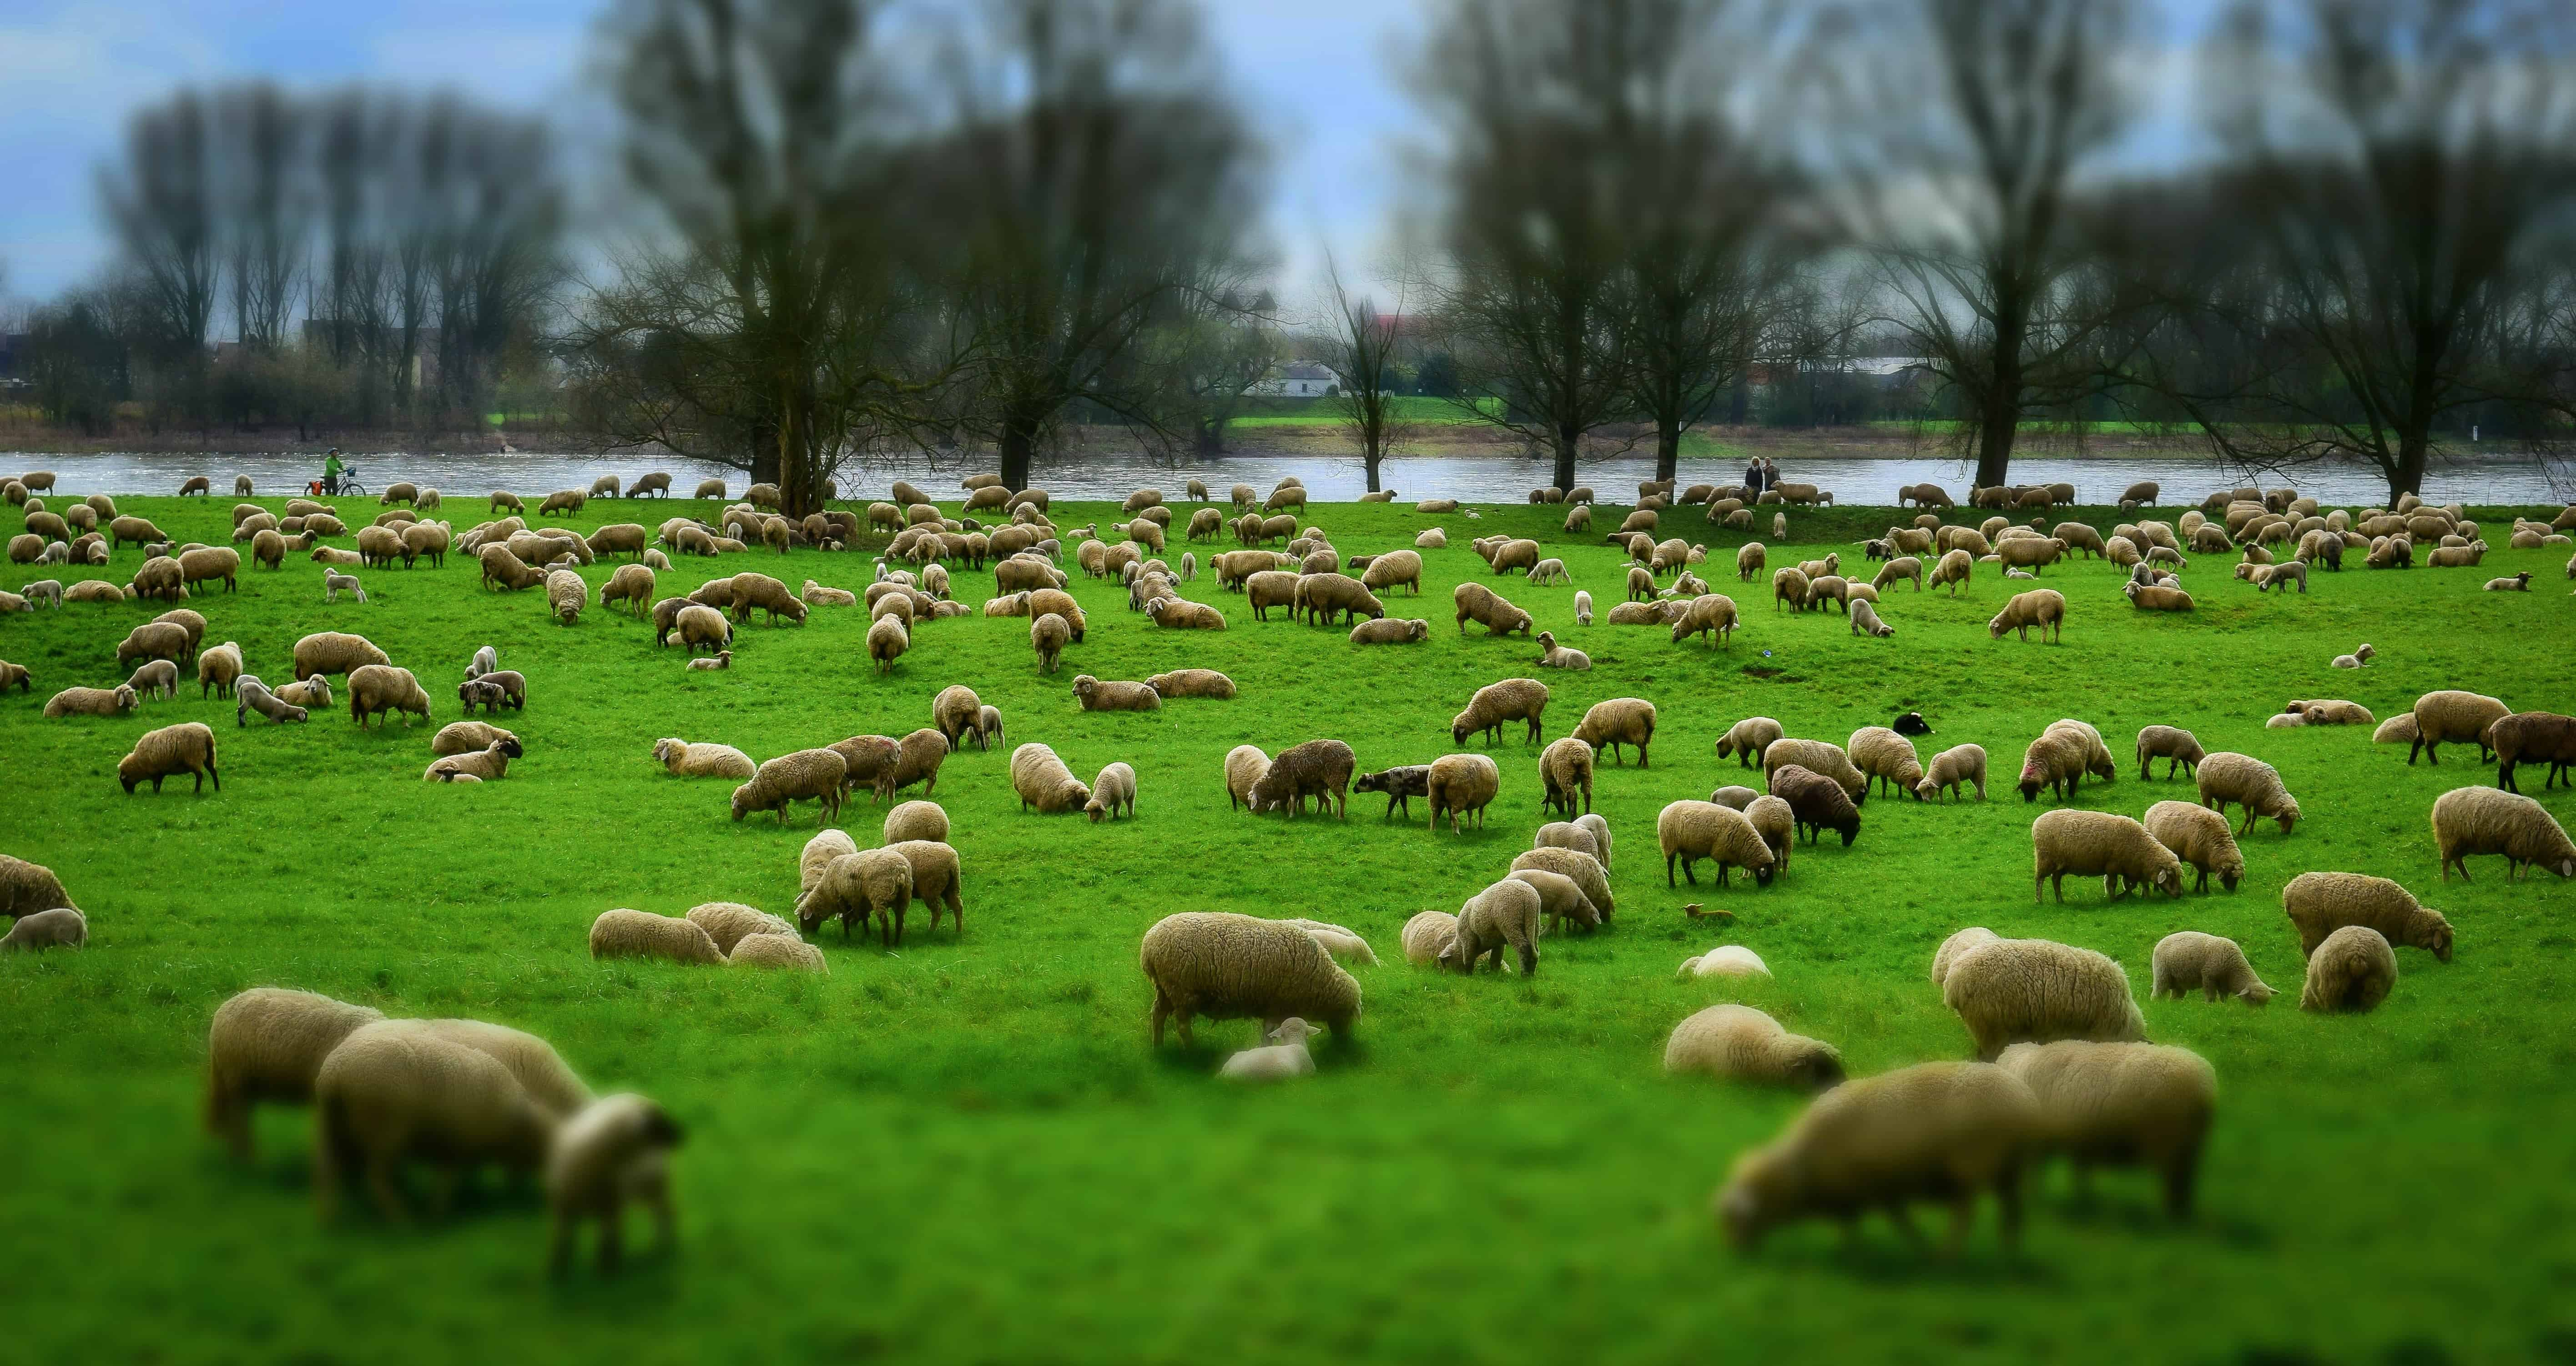 Livestock Herd Grass Agriculture Countryside Sheep